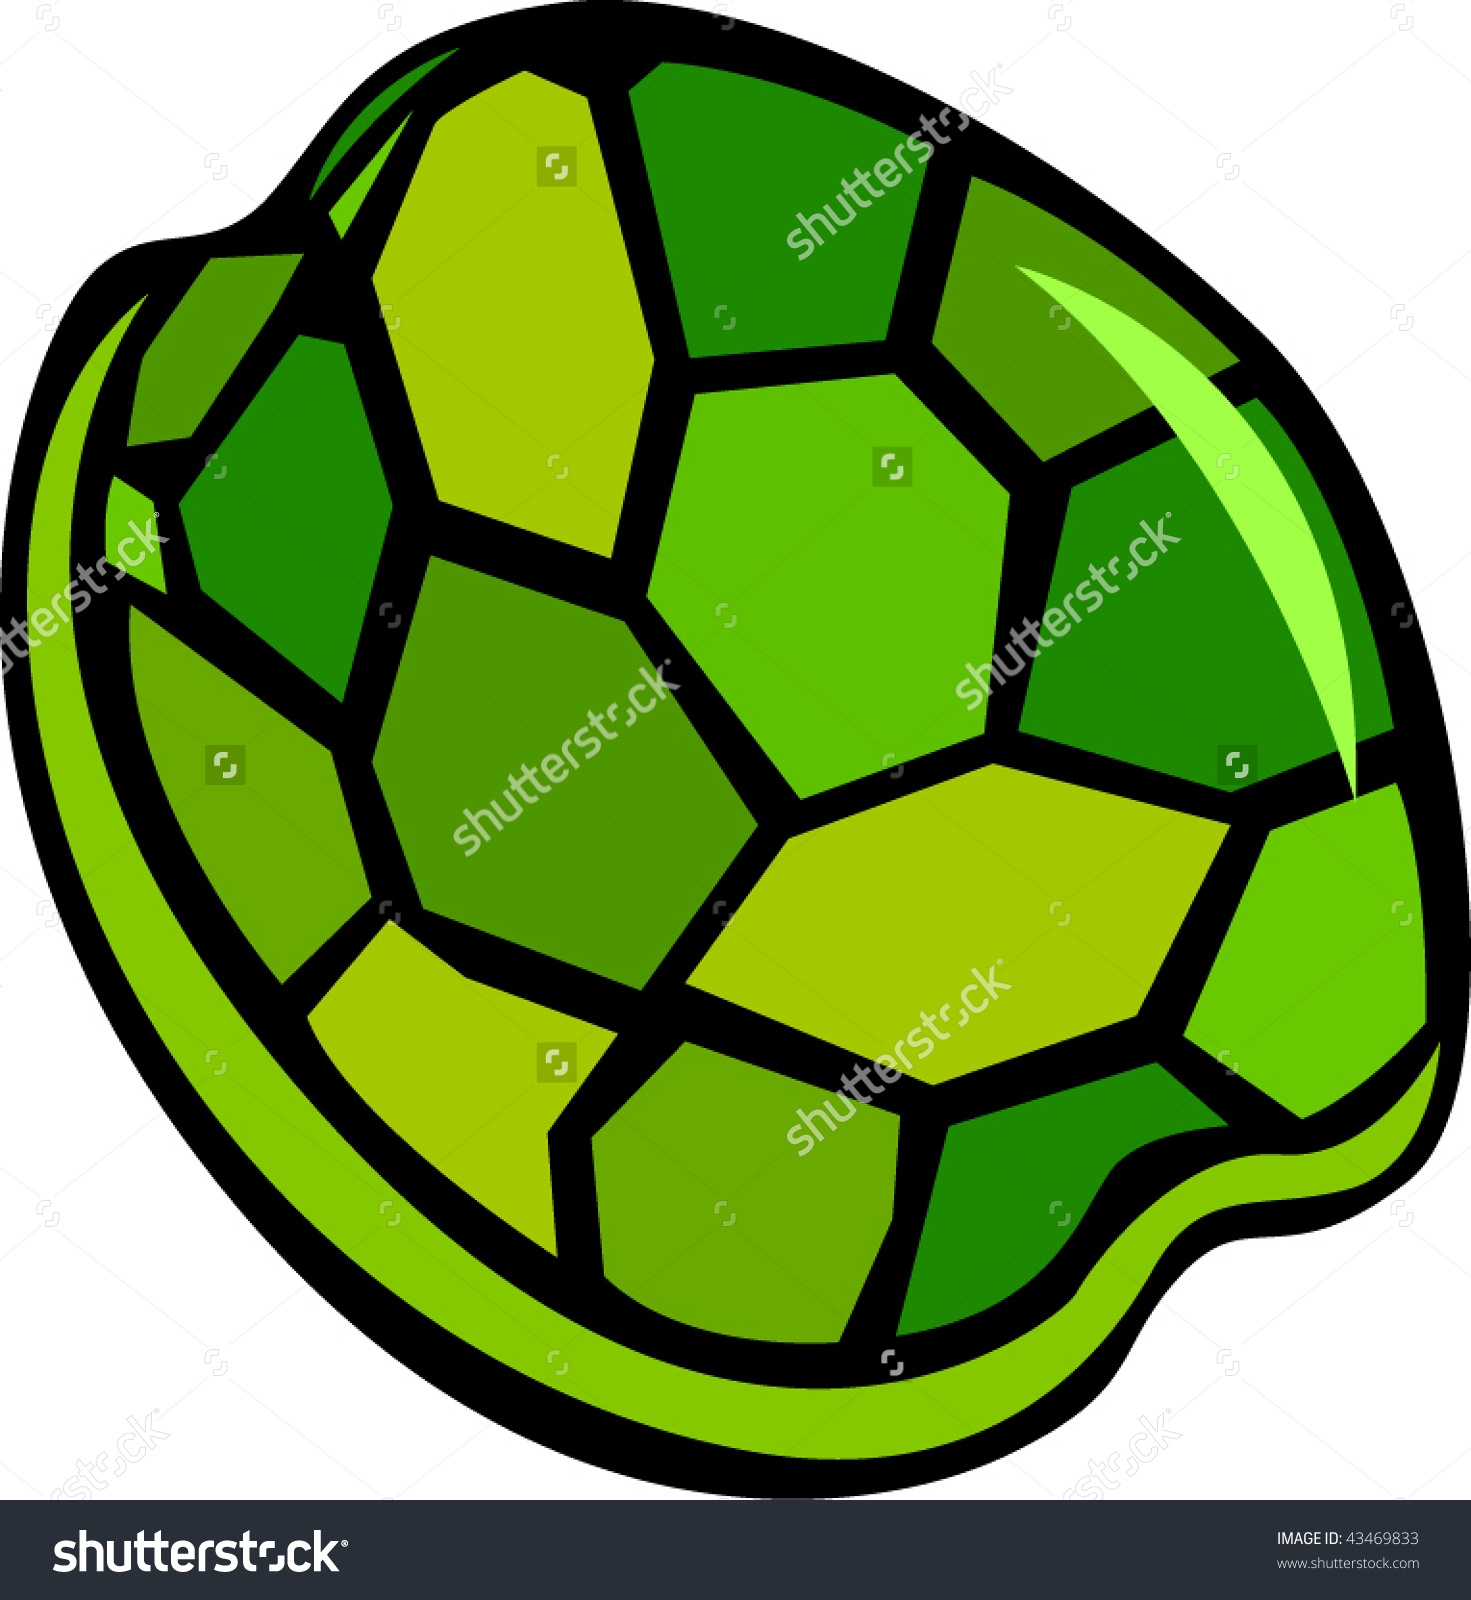 Turtle shell clip art.